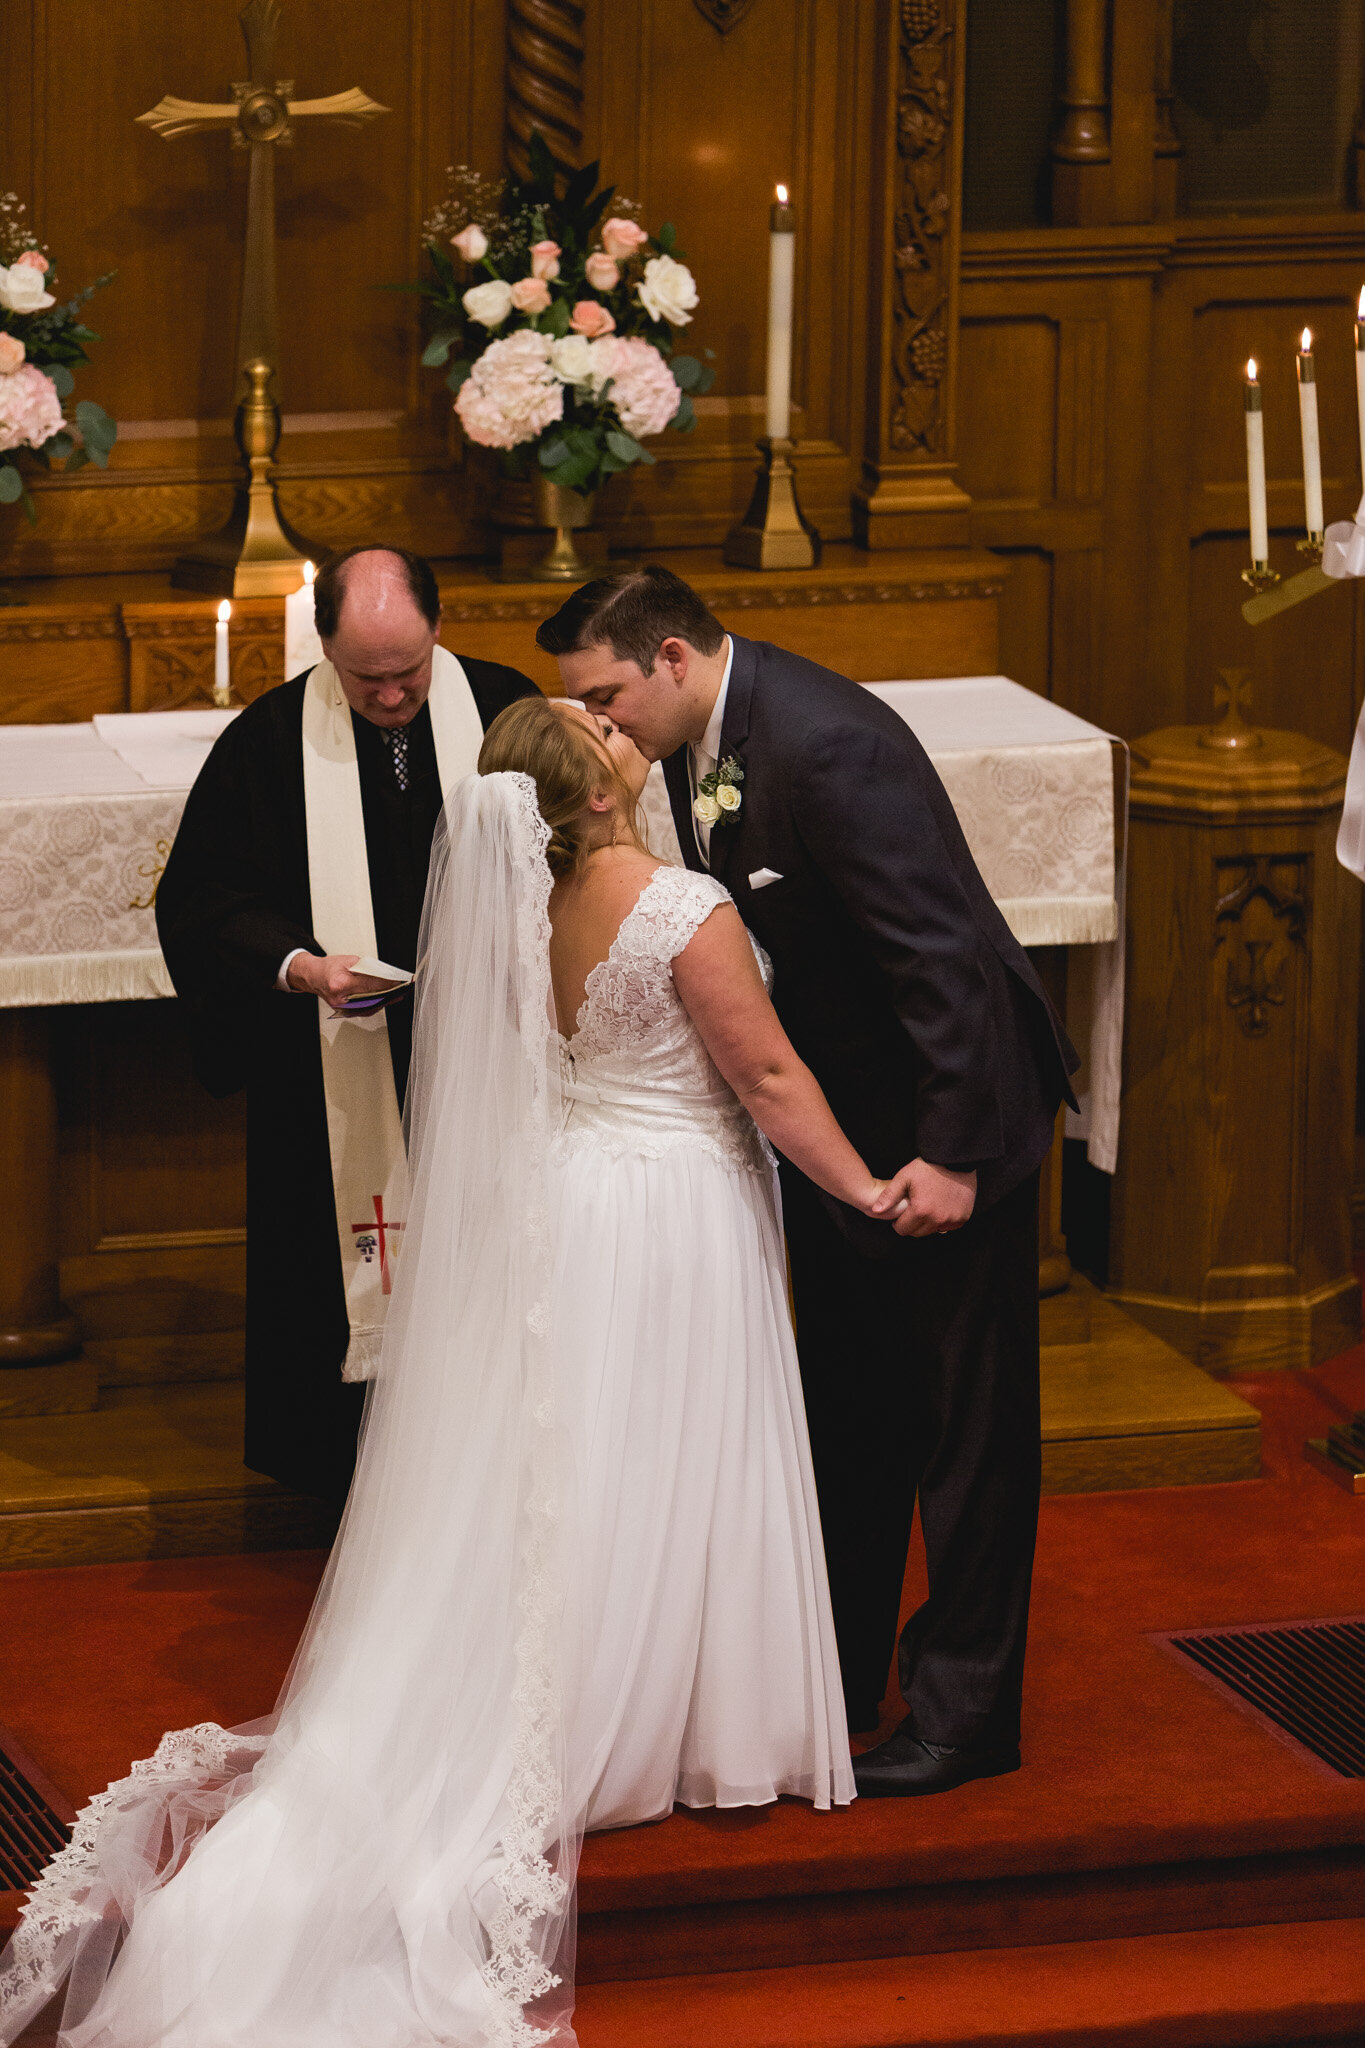 old church wedding ceremony first kiss with bride and groom ohio